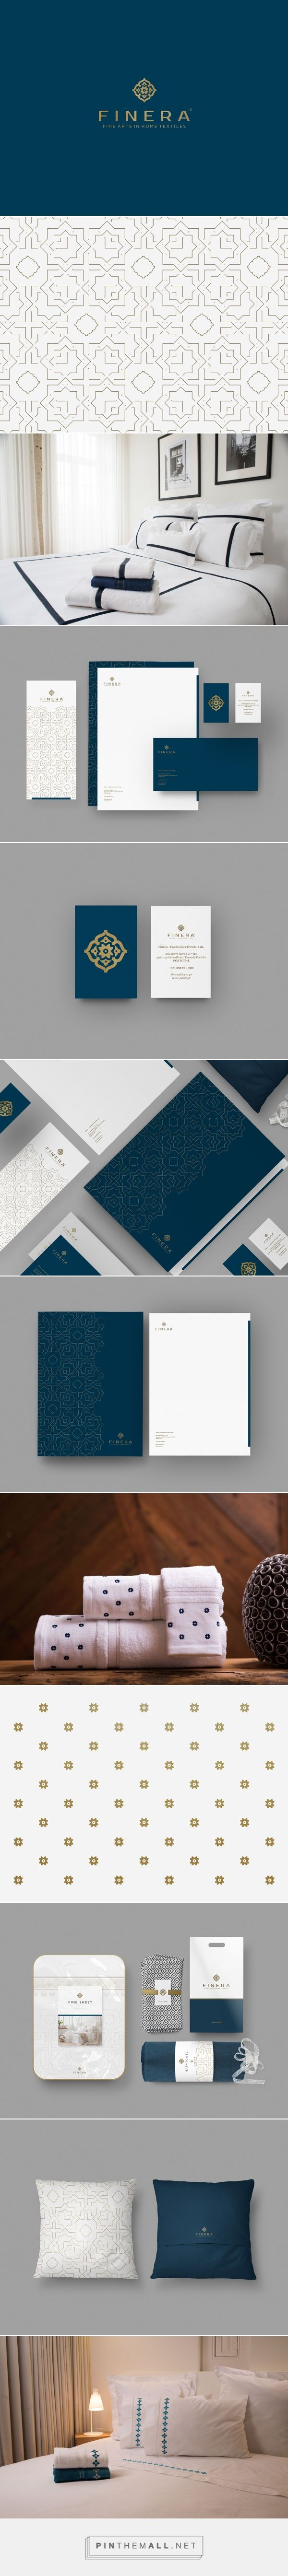 Finera Home Textile Branding by Bullseye  | Fivestar Branding Agency – Design and Branding Agency & Curated Inspiration Gallery